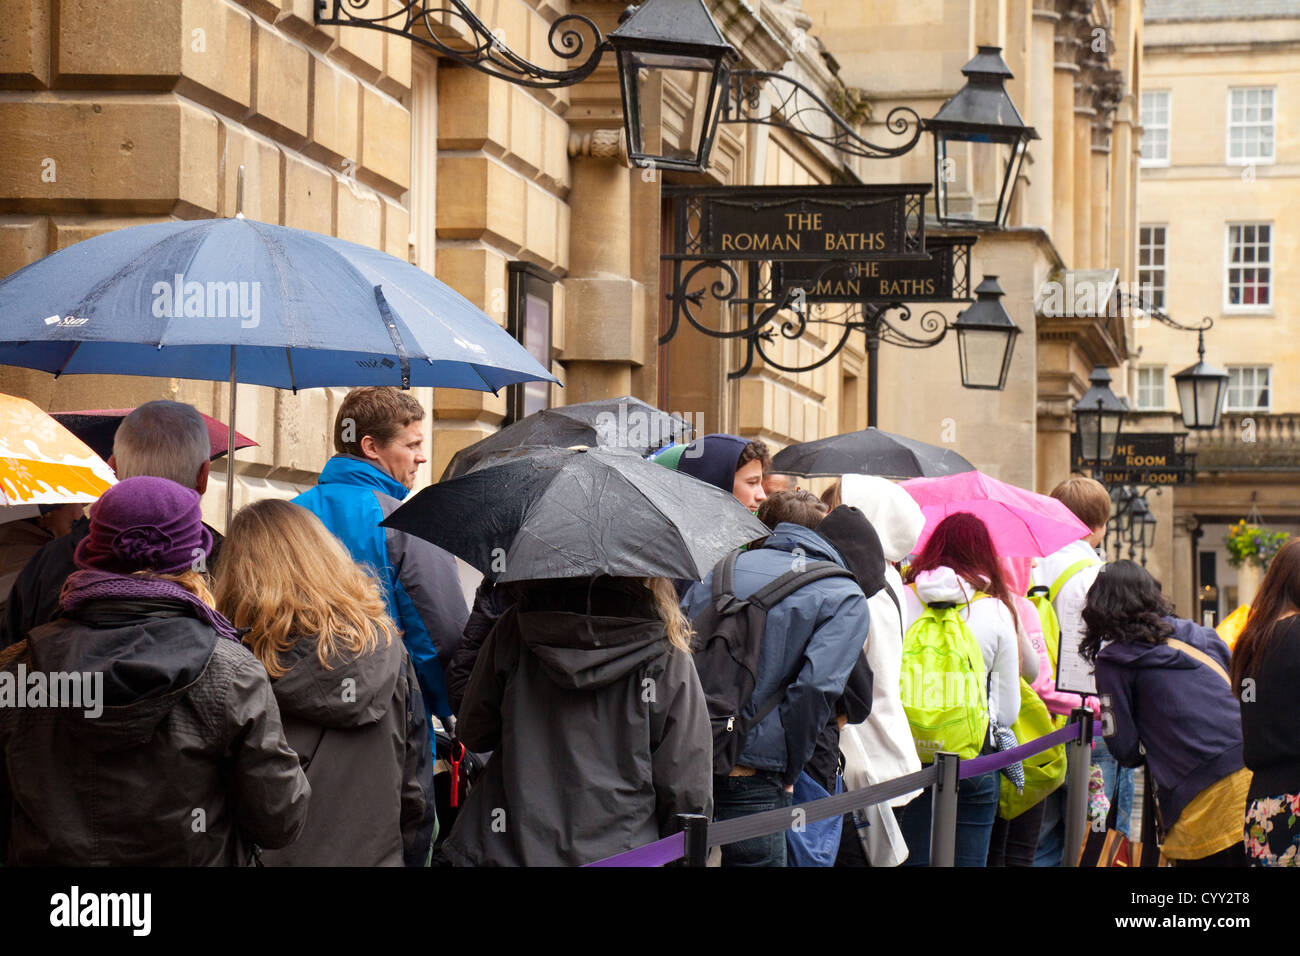 Crowds of people in a queue in the rain to get into the Roman Baths, Bath Somerset UK - Stock Image